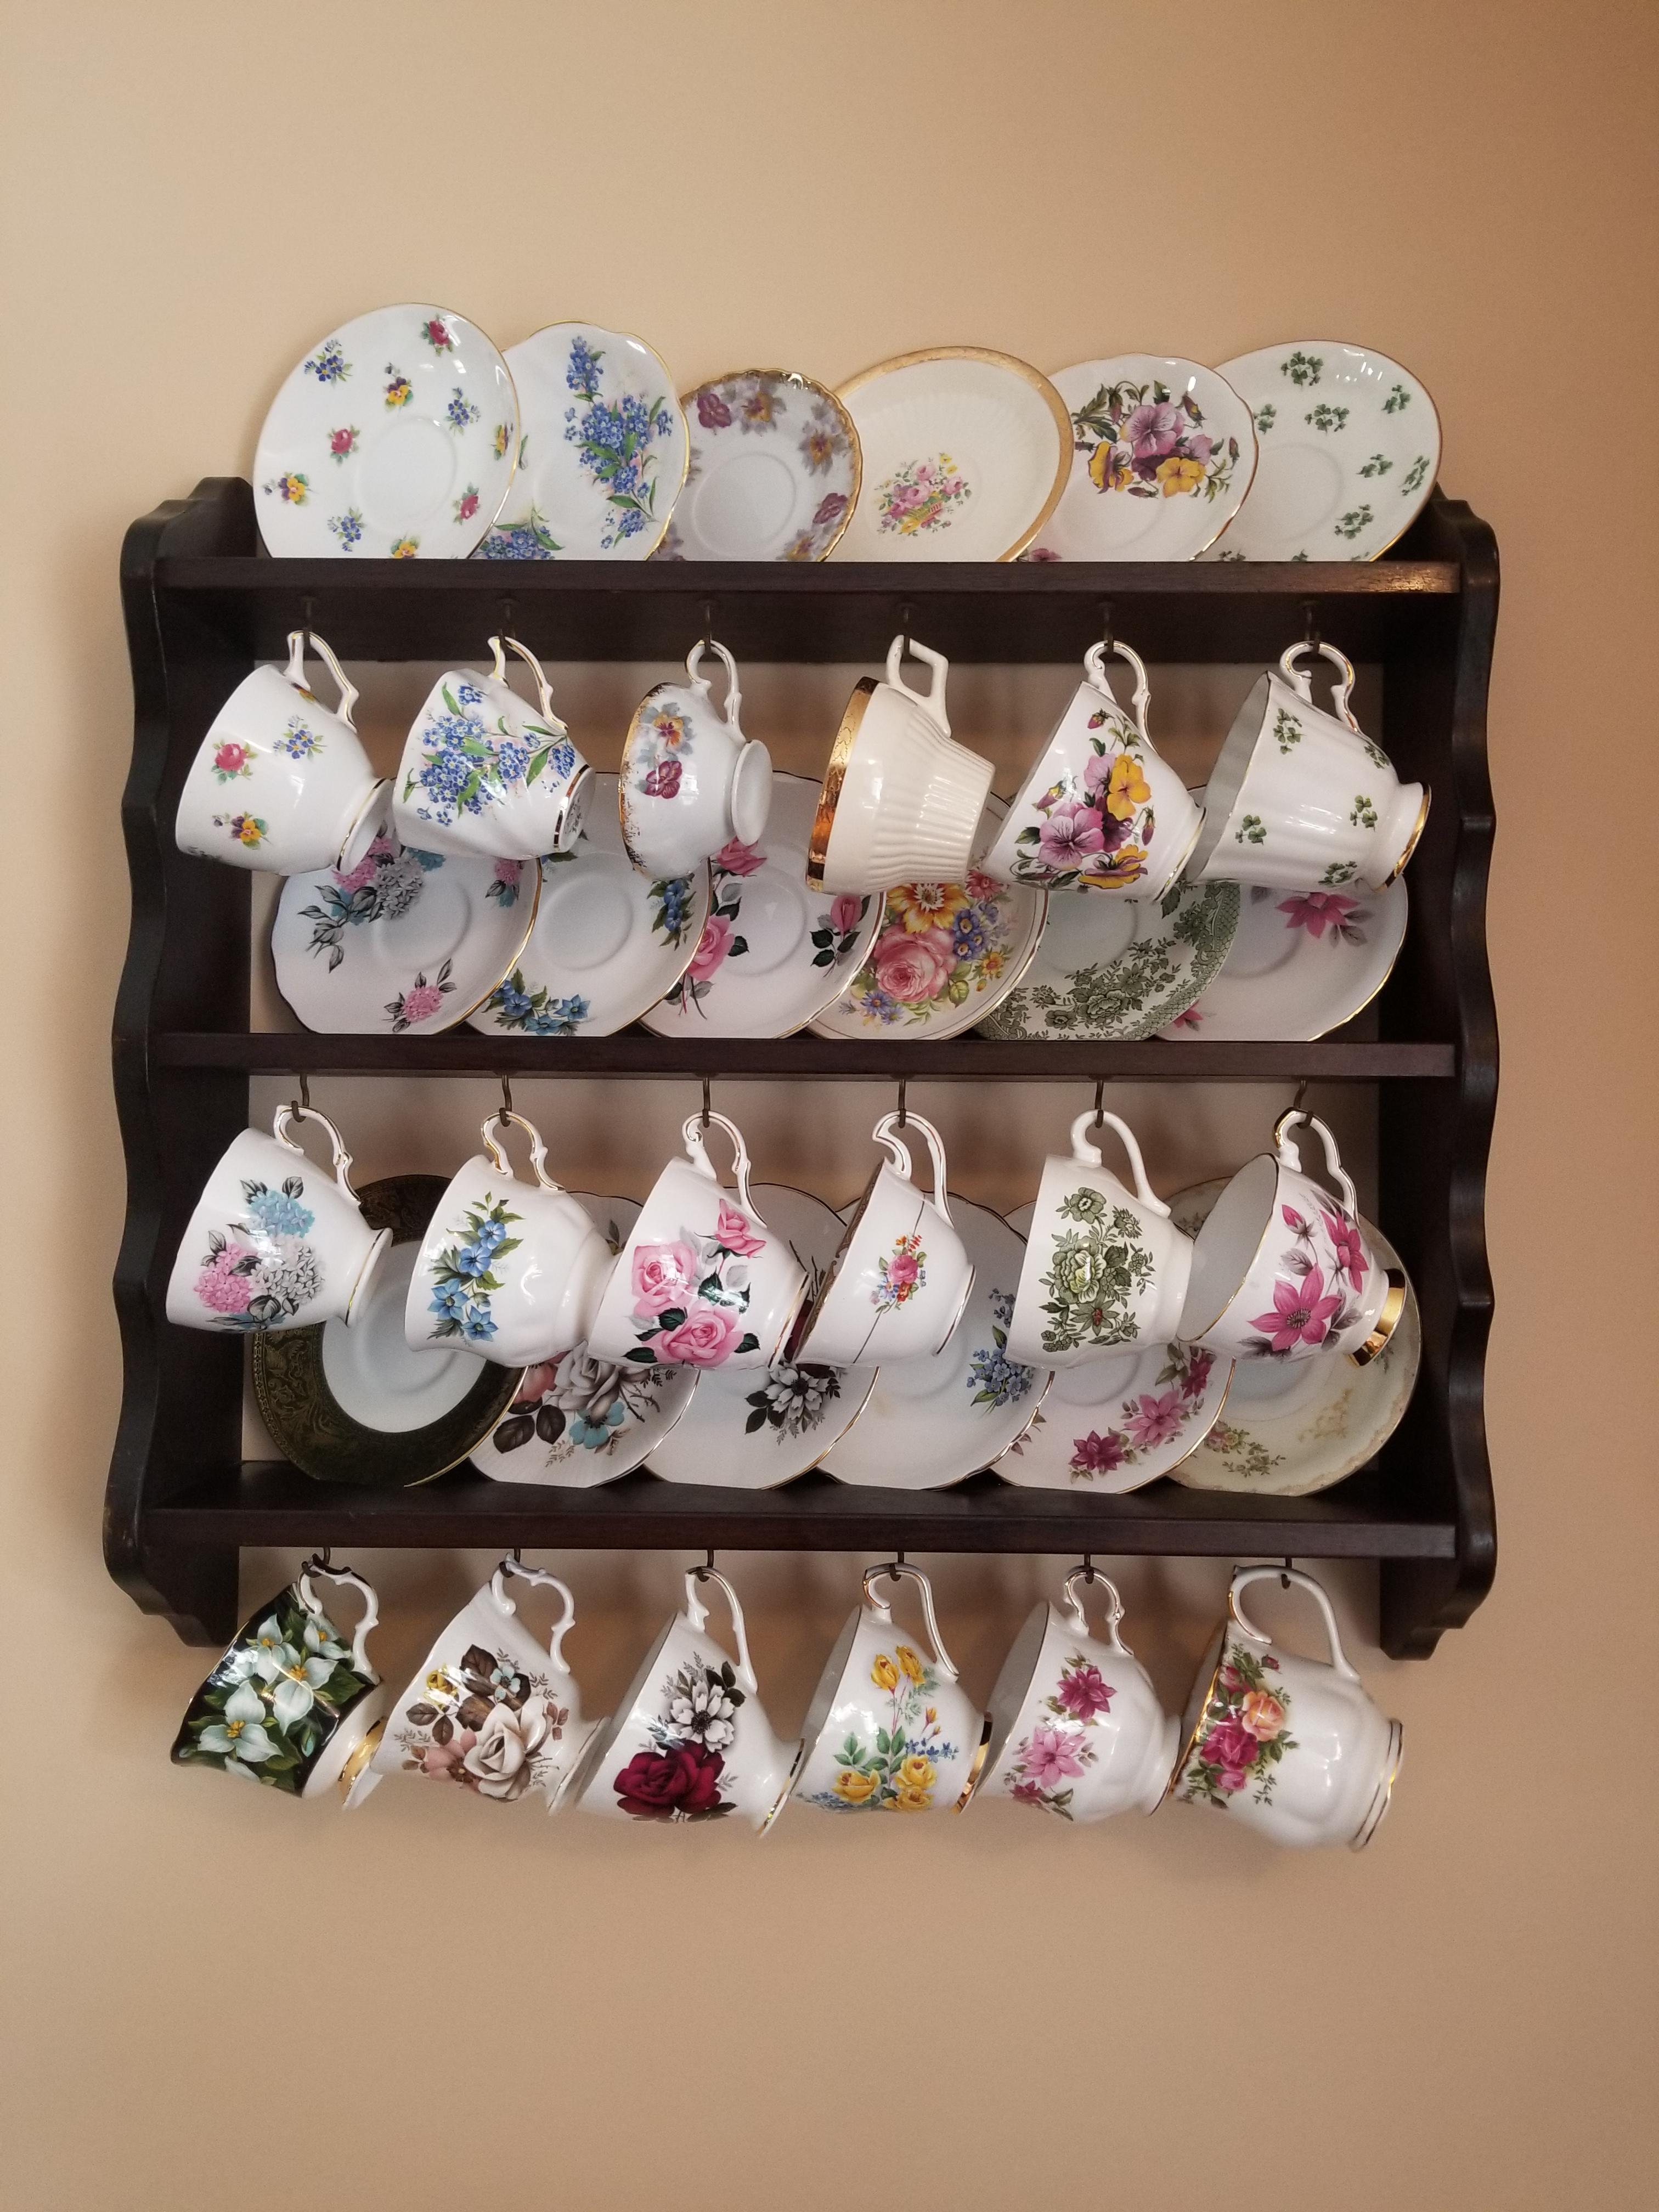 i found this tea cup display rack for